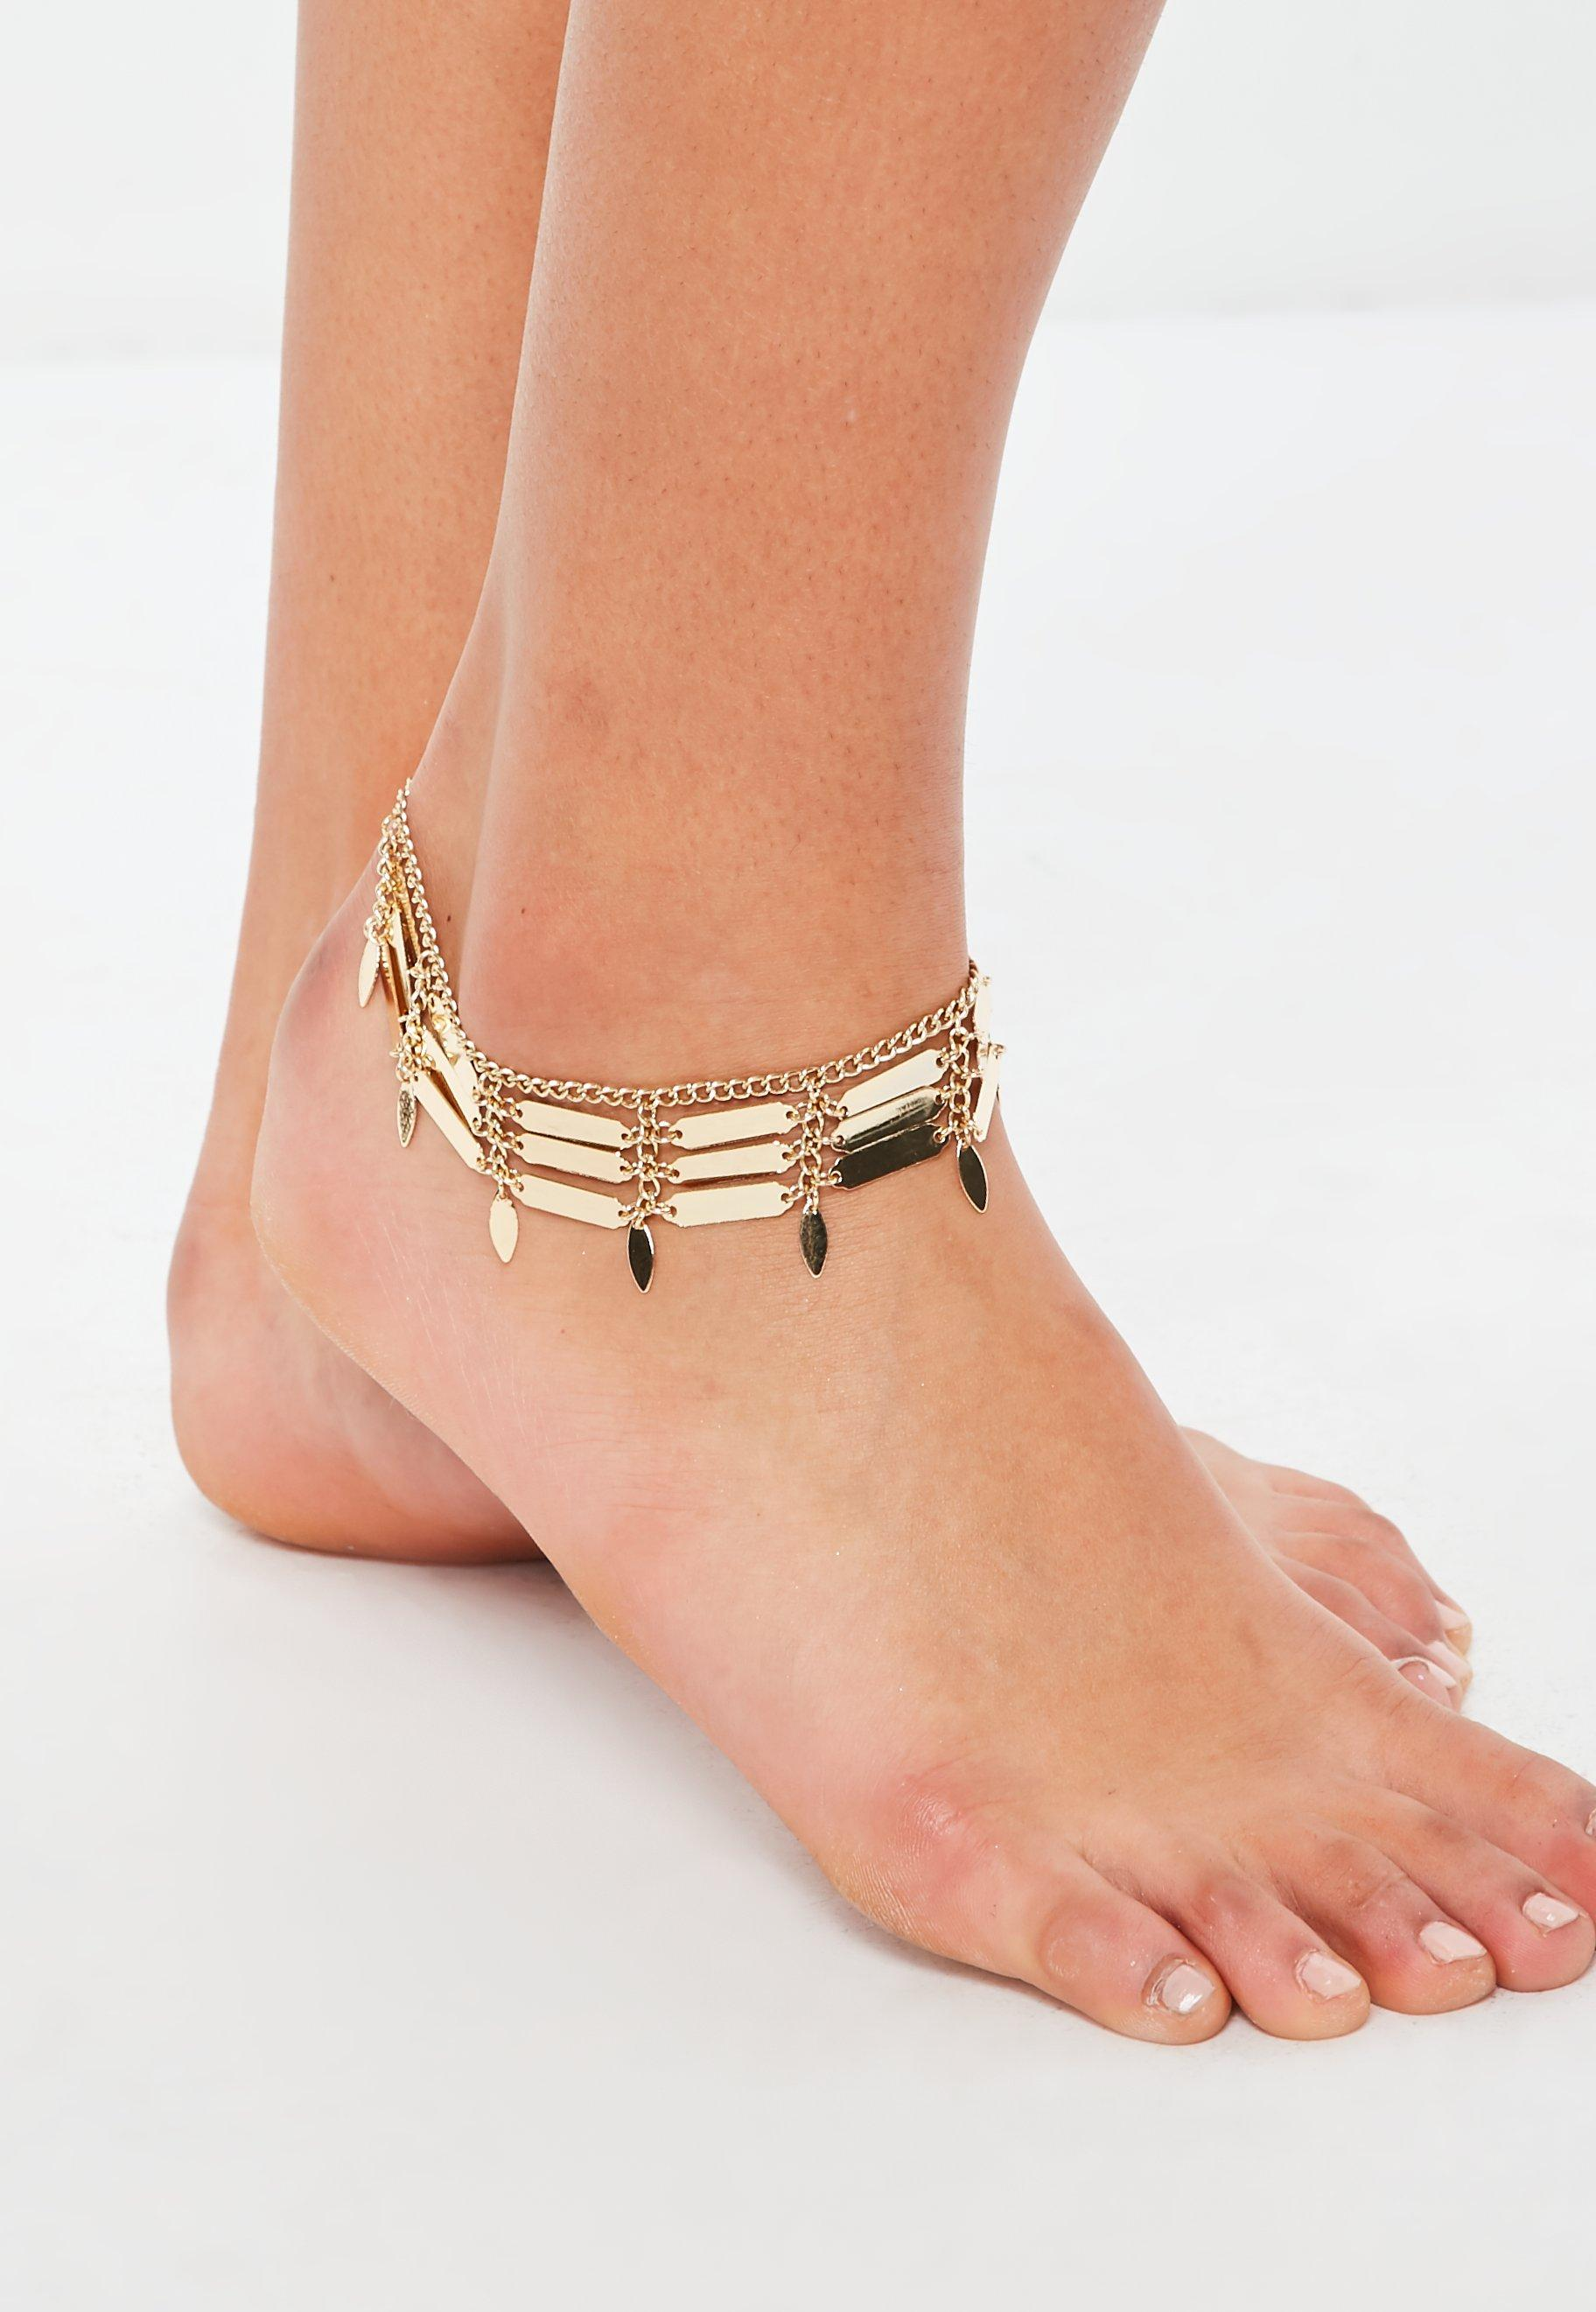 fashion buy can of shopping gold jennifer is every anklets anklet ankle you summer why wear accessory bracelet elle fisher the day